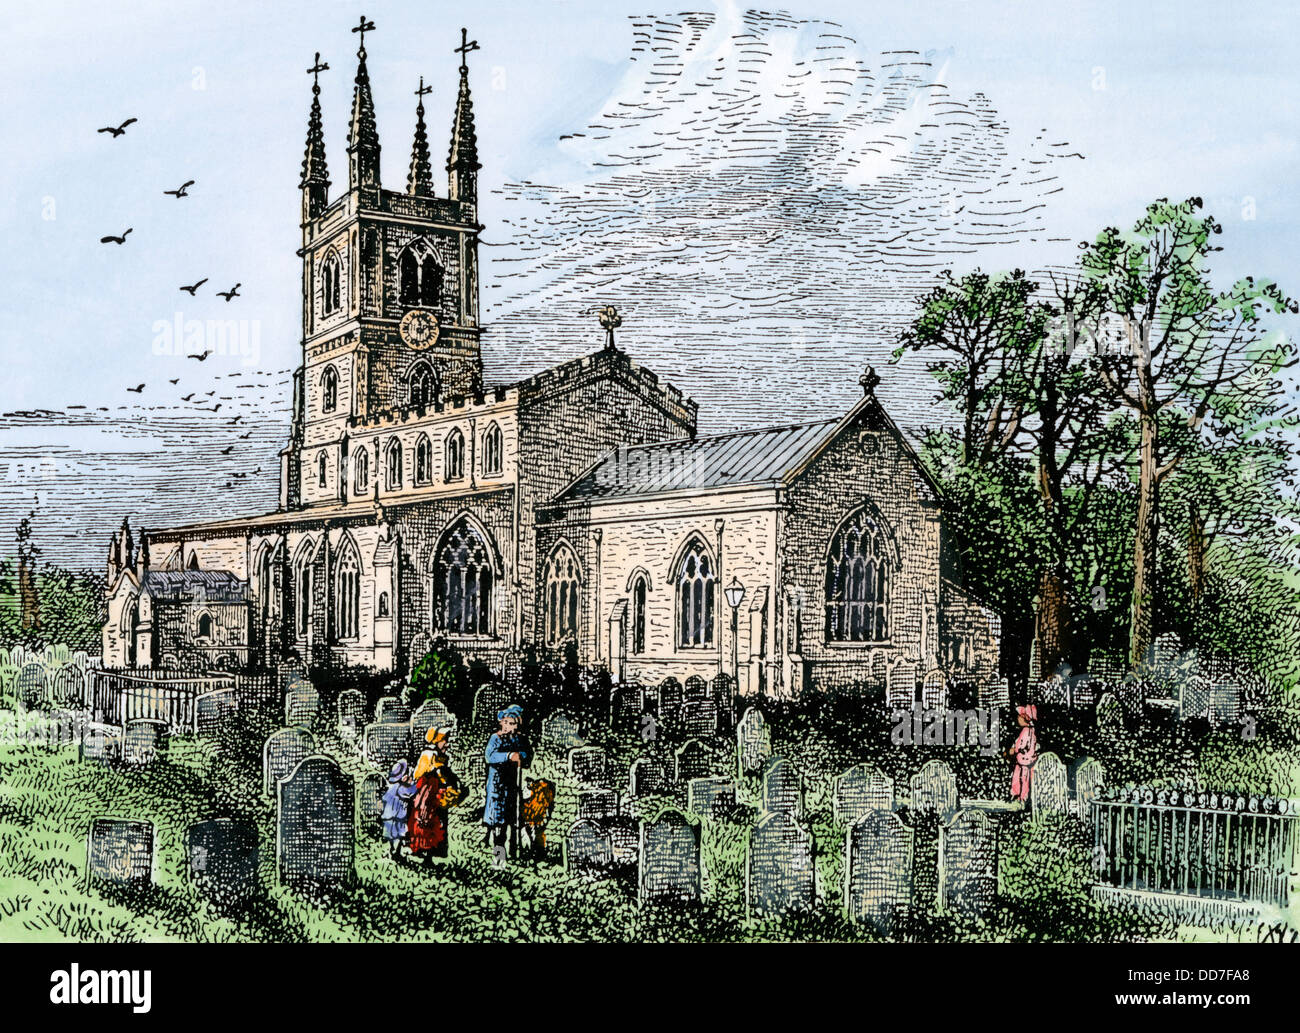 St Mary's Parish Church and graveyard, Lutterworth, England, 1800s. Hand-colored woodcut - Stock Image